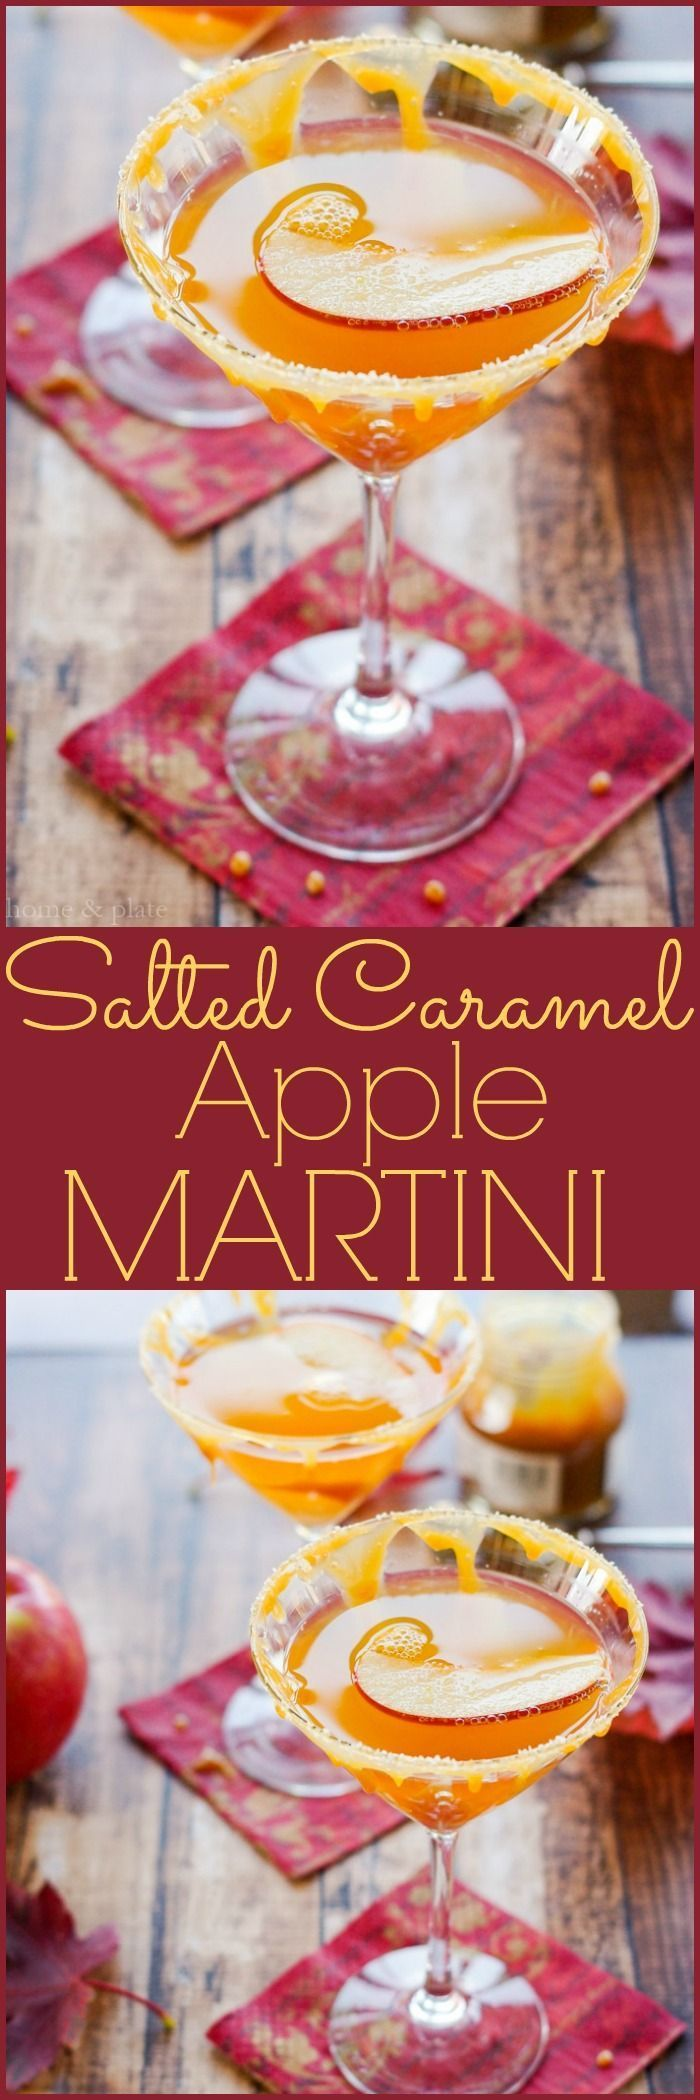 Salted Caramel Apple Martini   http://www.homeandplate.com   Fresh apple cider and caramel flavored vodka make up this fabulous fall drink.